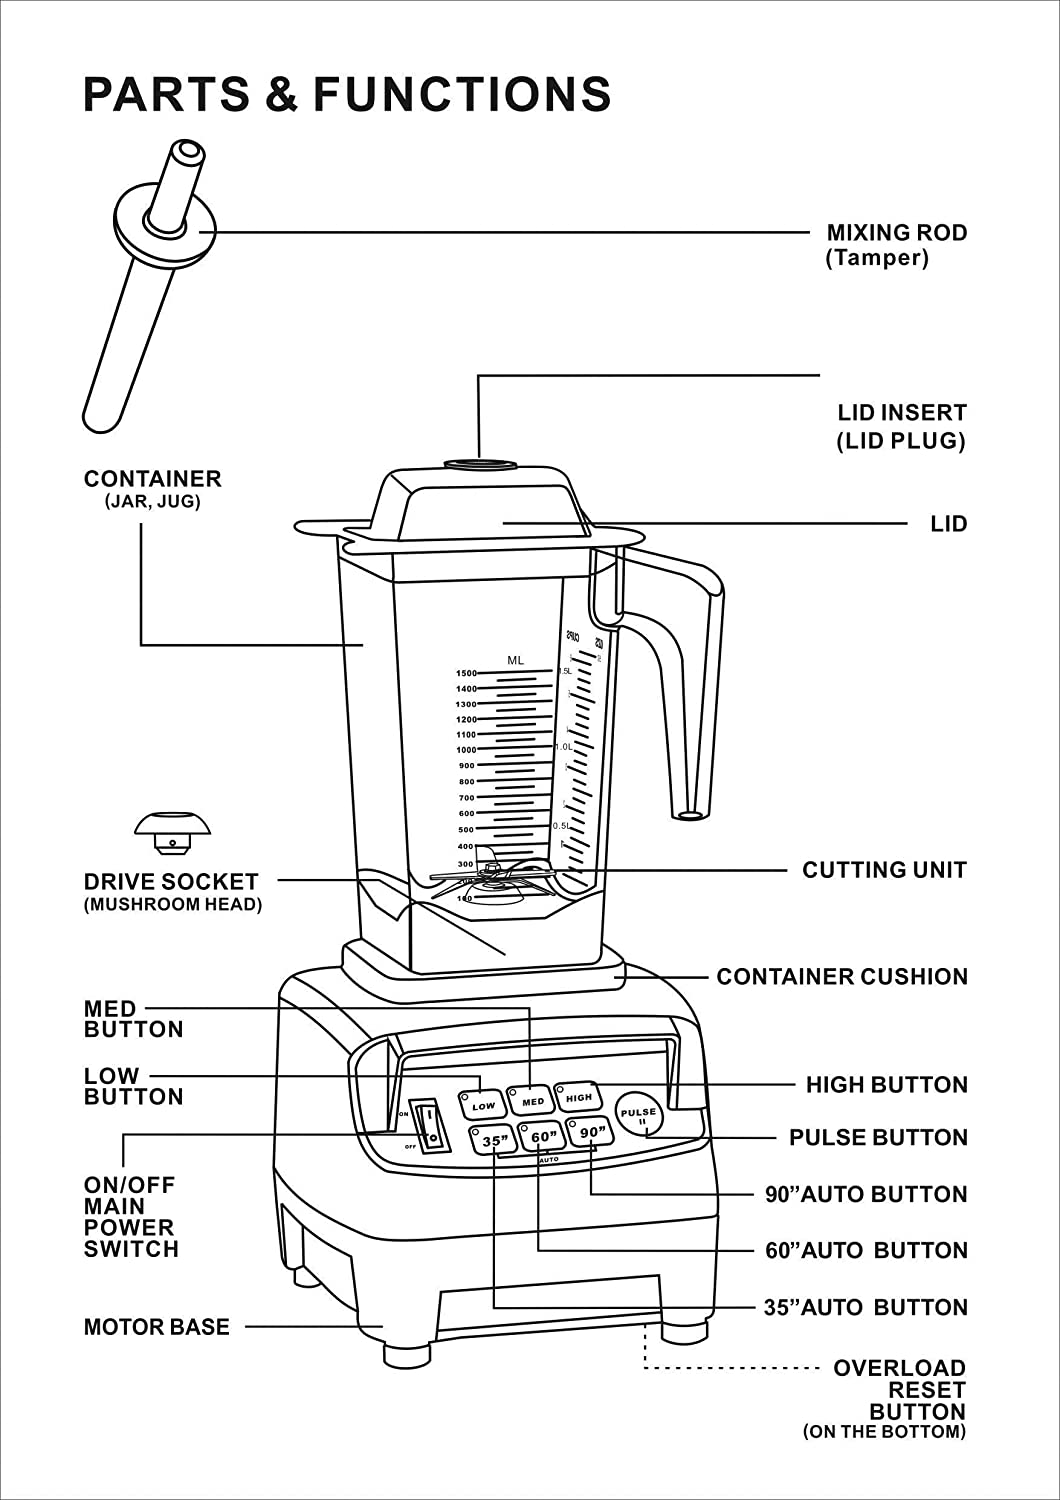 Parts and functions of kitchen blender by JTC OmniBlend